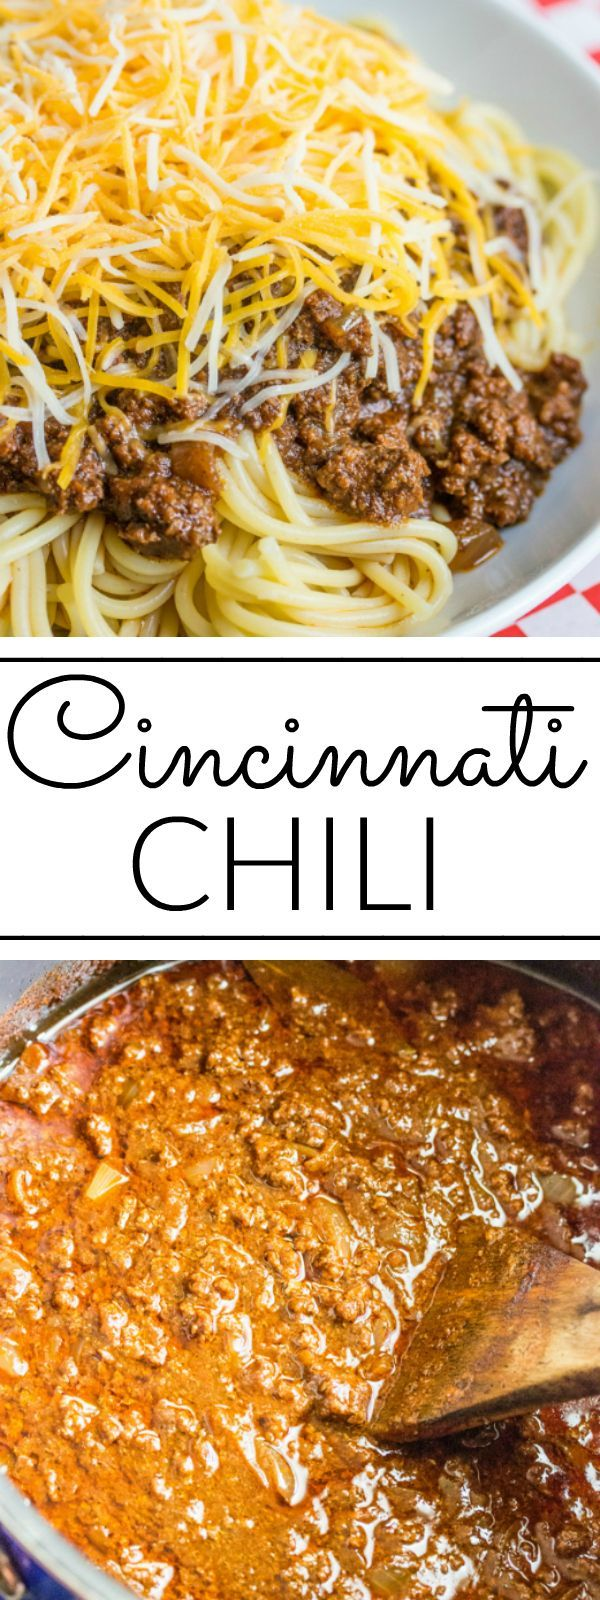 Chili Deliciously hearty this Cincinnati Chili is a unique chili recipe served over spaghetti and topped with cheese, onions or beans or a combination of the 5!Deliciously hearty this Cincinnati Chili is a unique chili recipe served over spaghetti and topped with cheese, onions or beans or a combination of the 5!